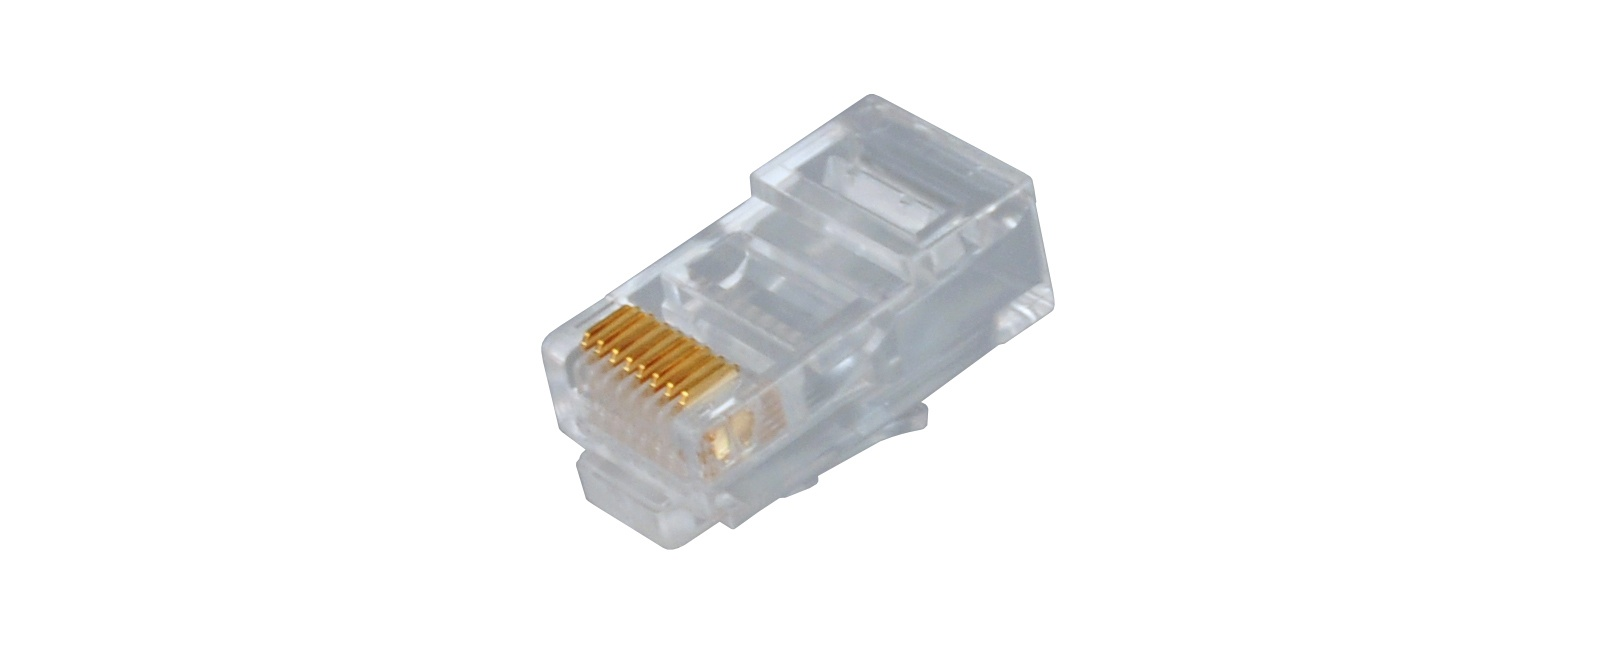 http://info.belden.com/hubfs/resources/blog/broadcast-audio-video/installing-rj45-connectors-at-infocomm.jpg